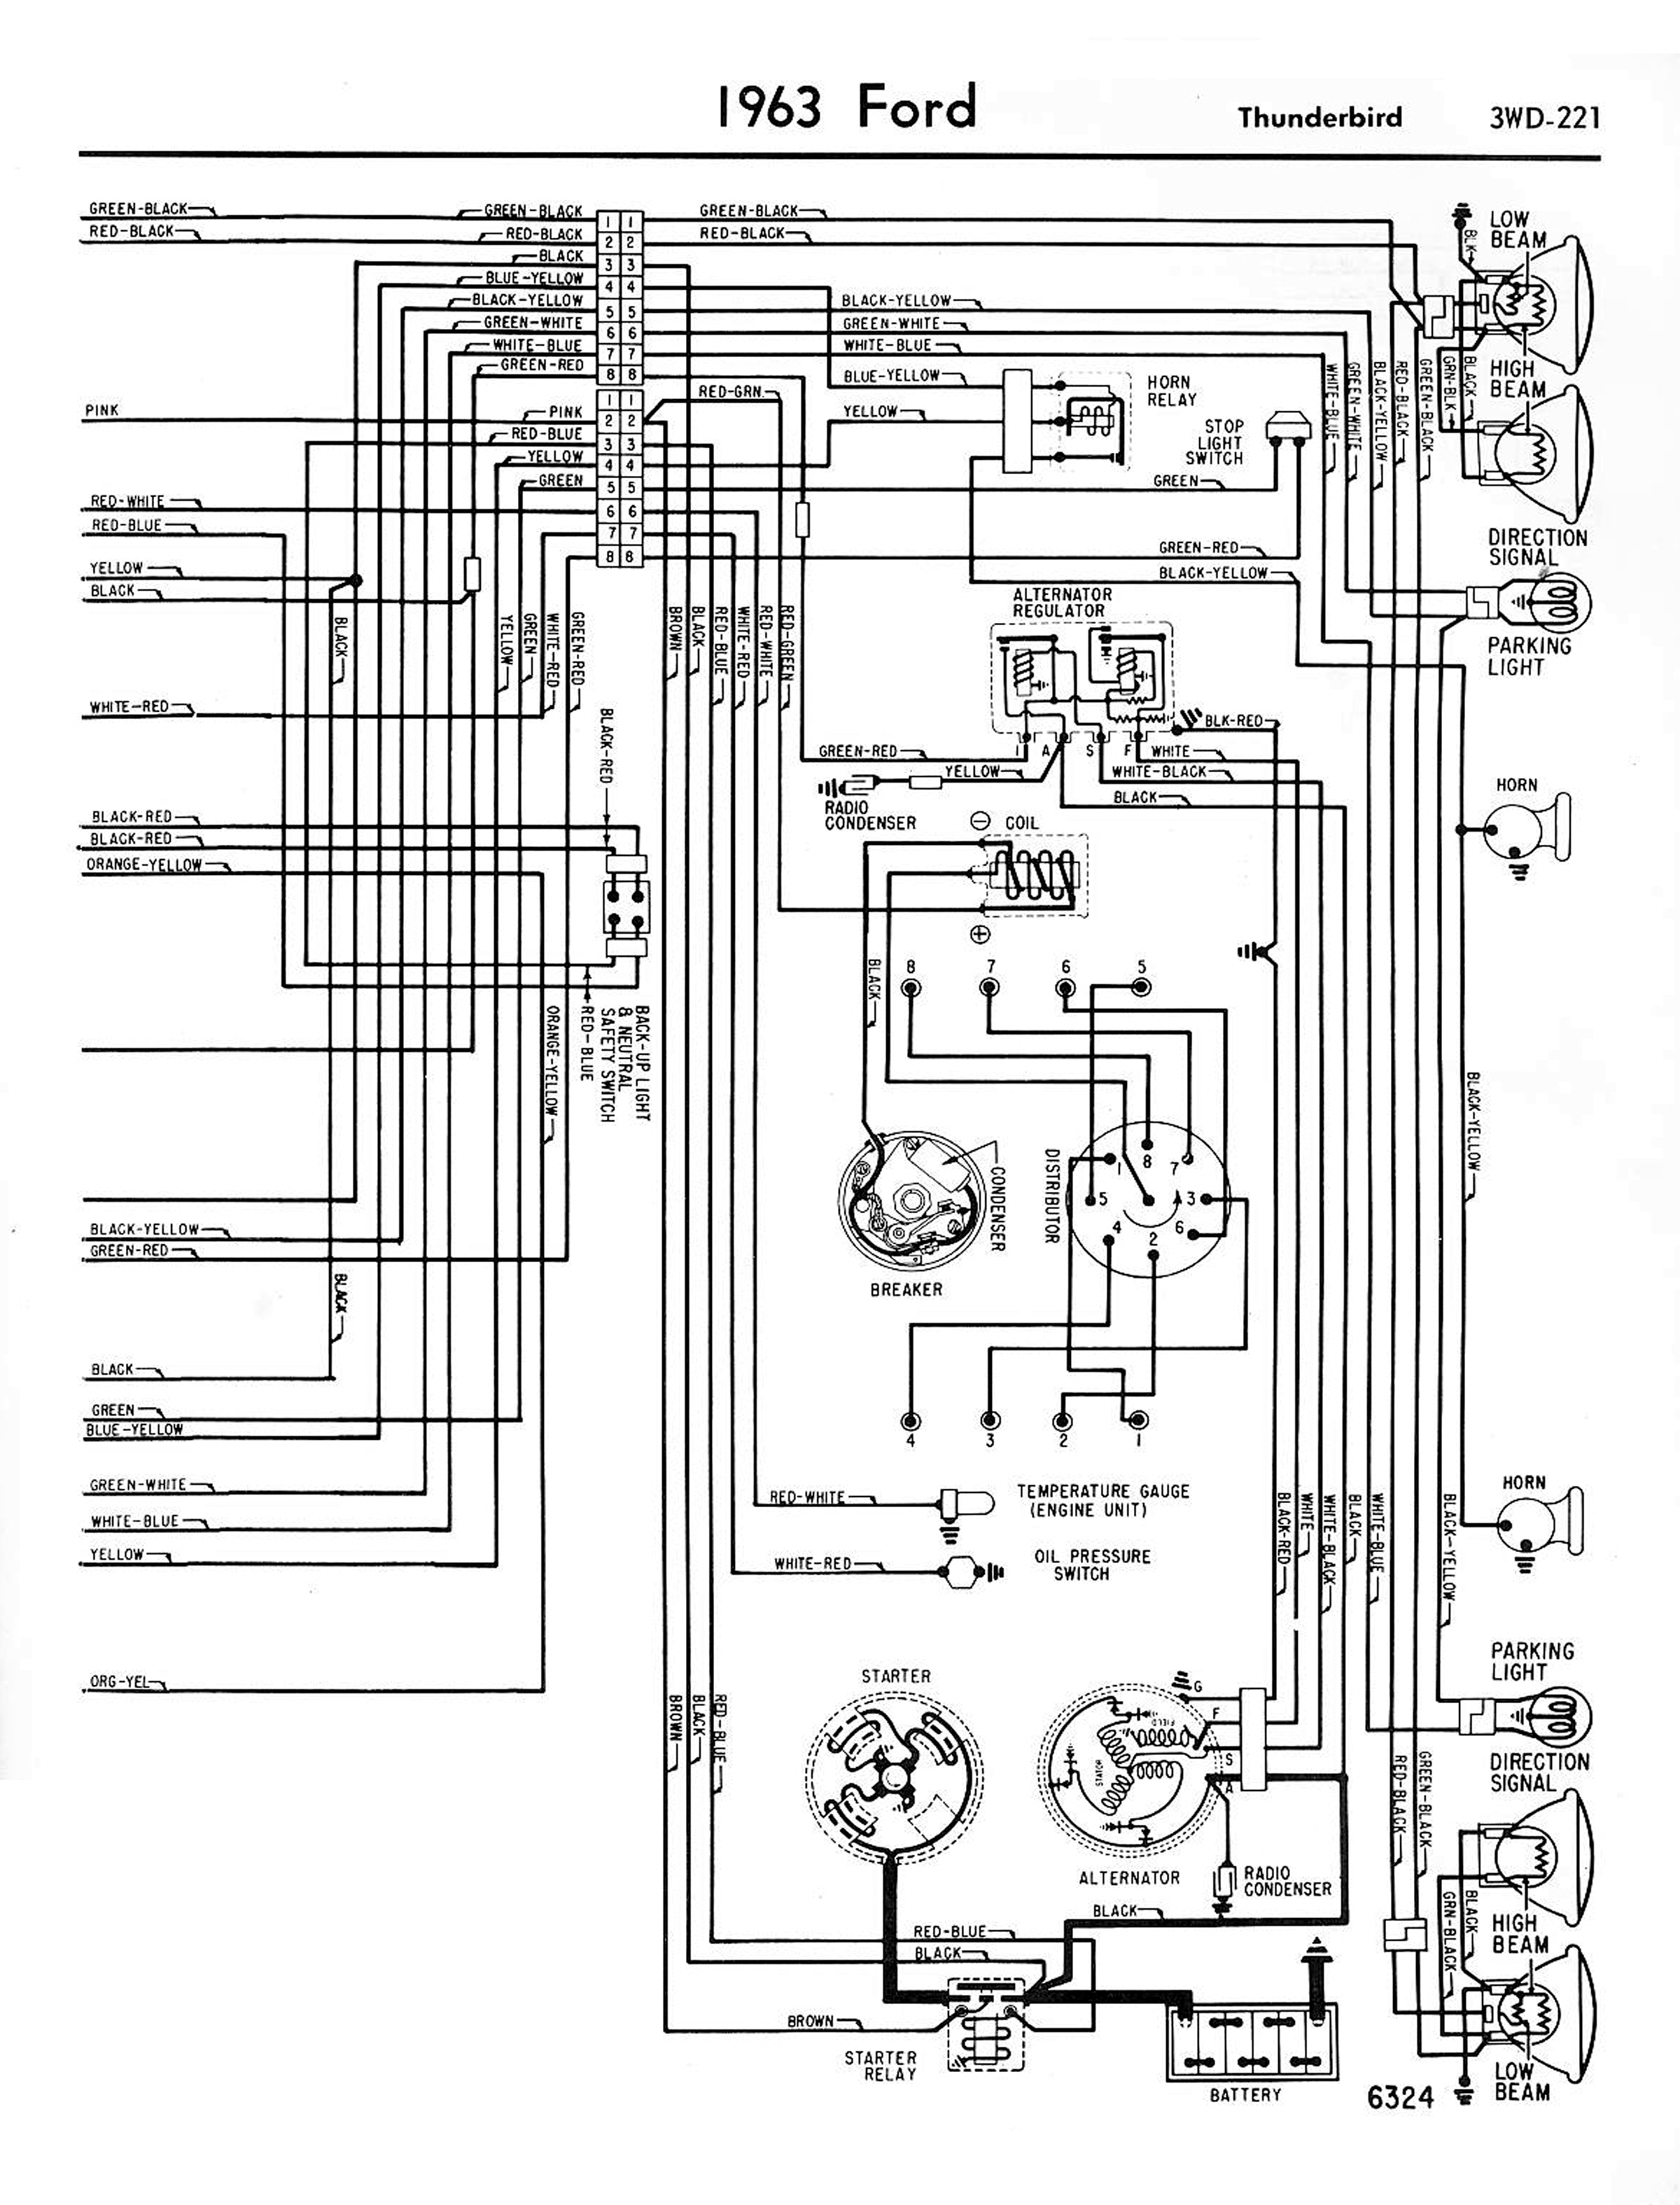 1963 Ford Turn Signal Switch Wiring Diagram Library Fuel Gauge For F150 Flarebird Vacuum Diagrams